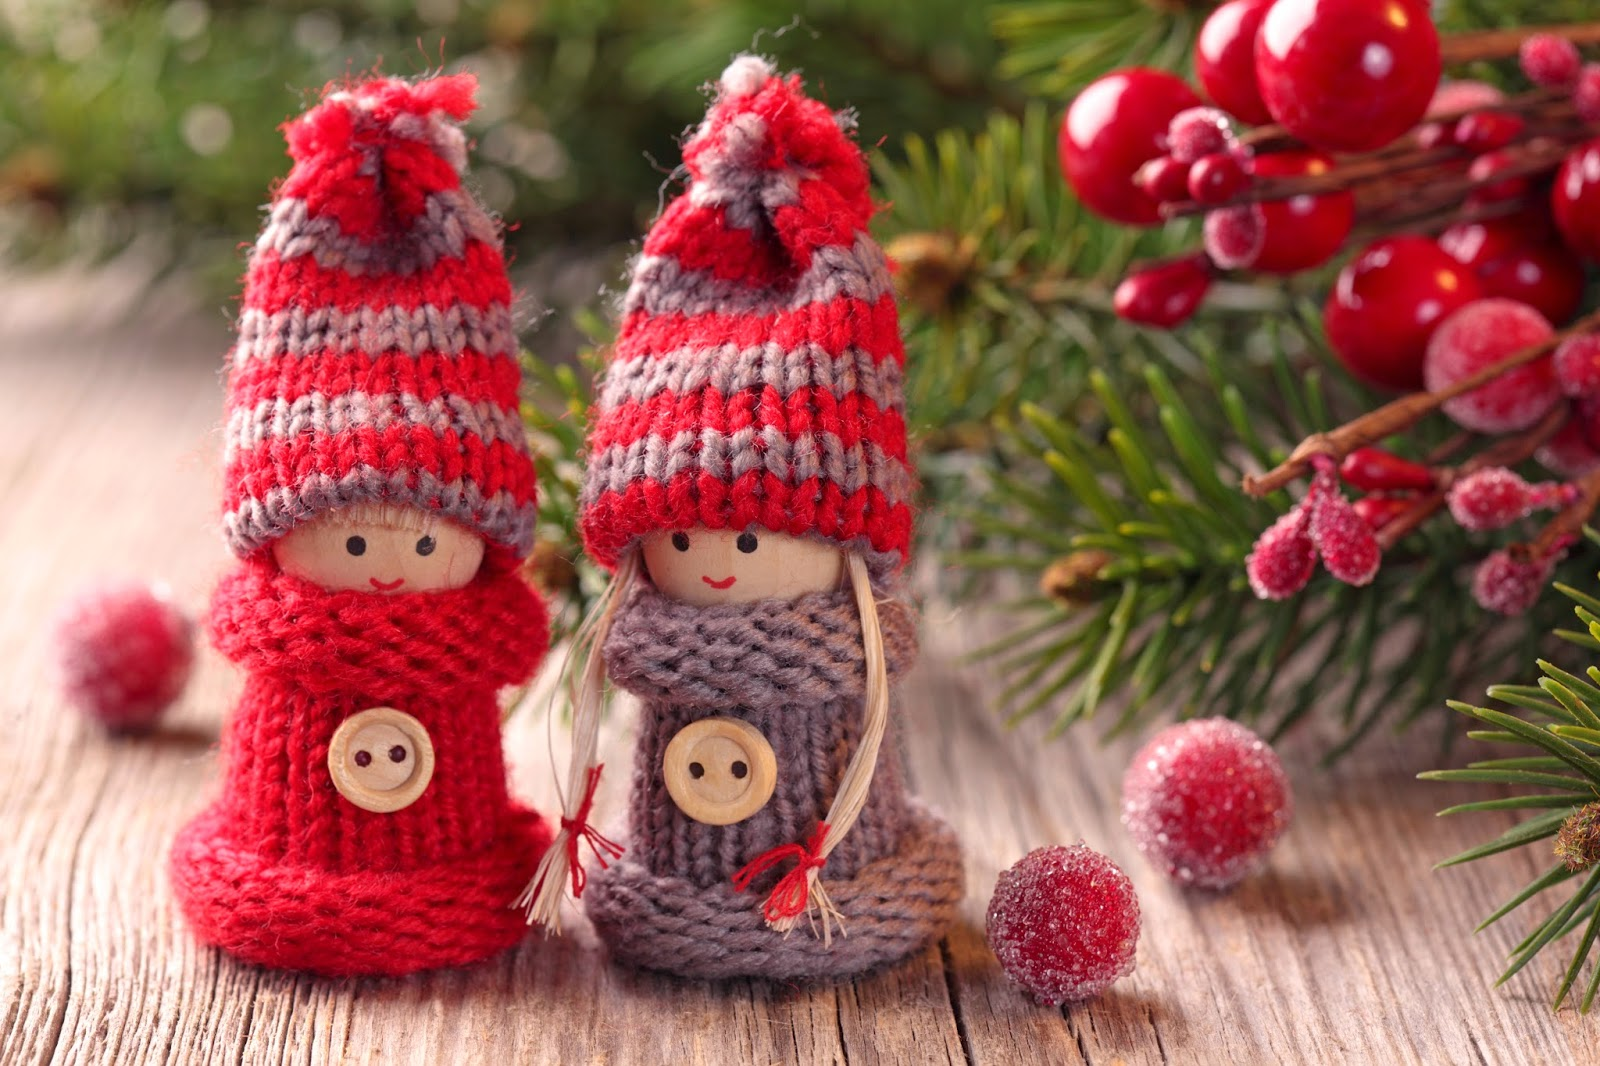 Christmas-decoration-vintage-hand-knitted-toys-images-pictures.jpg